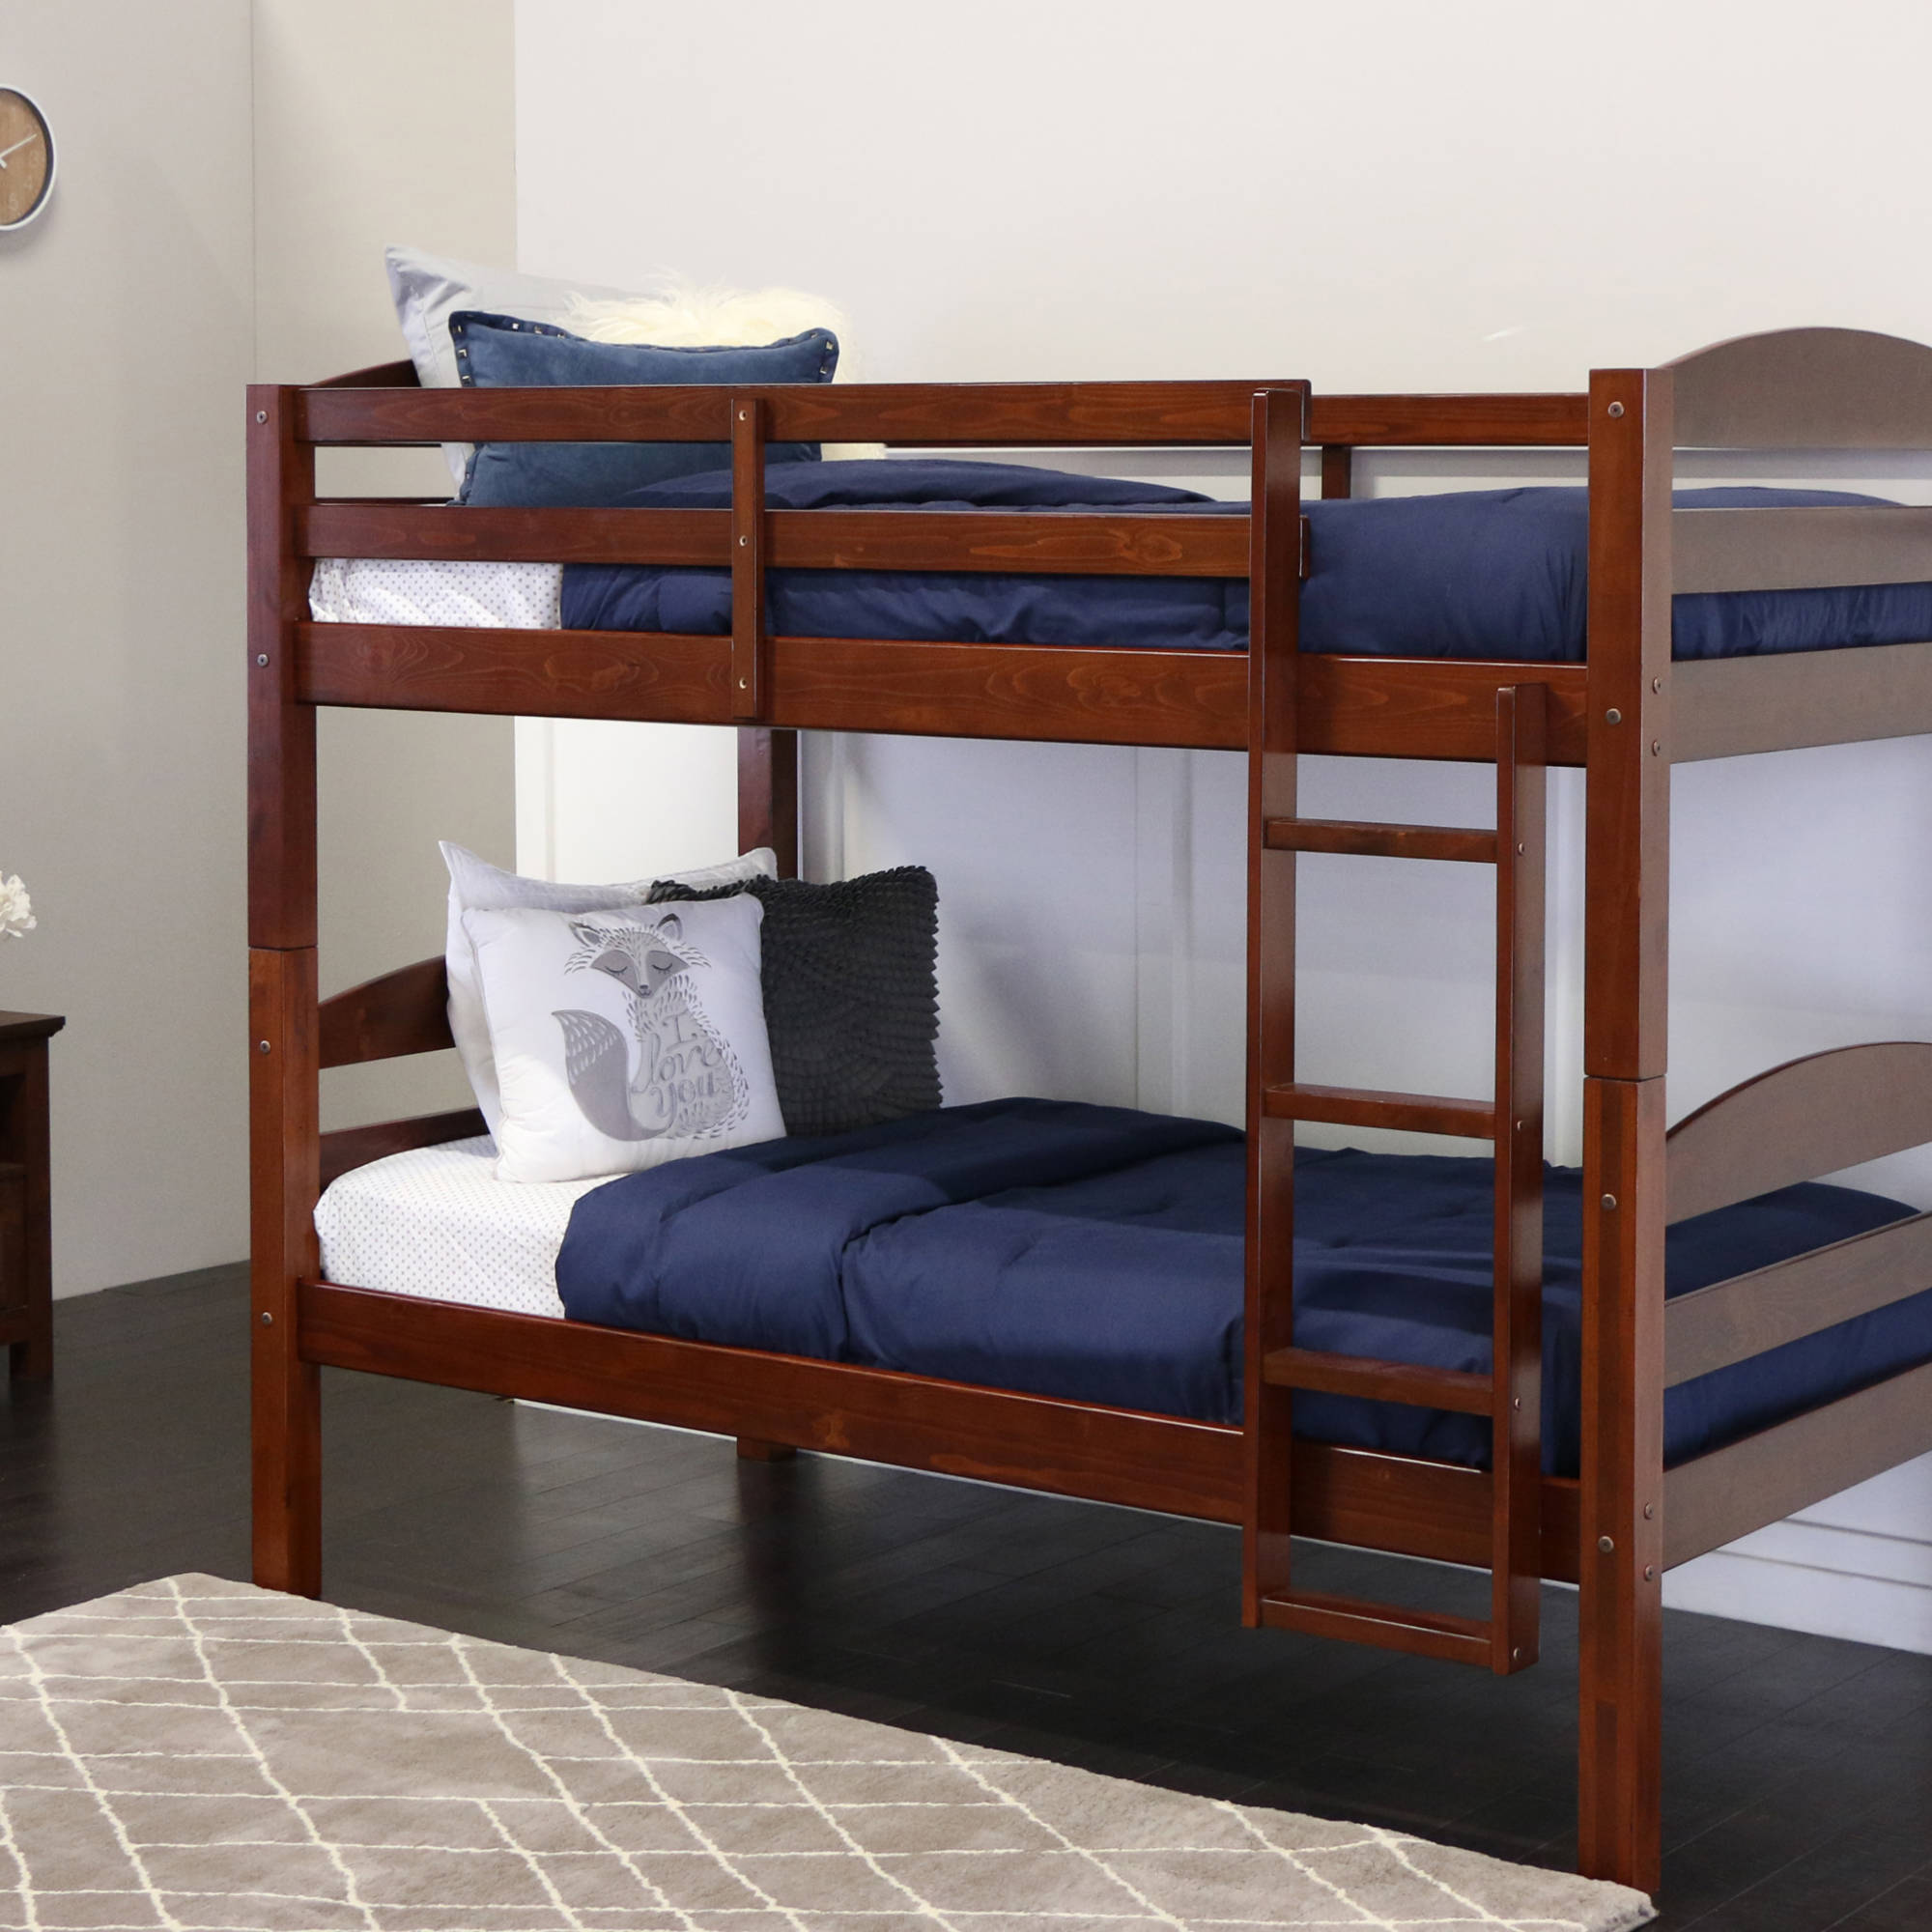 How To Build A Toddler Bunk Bed